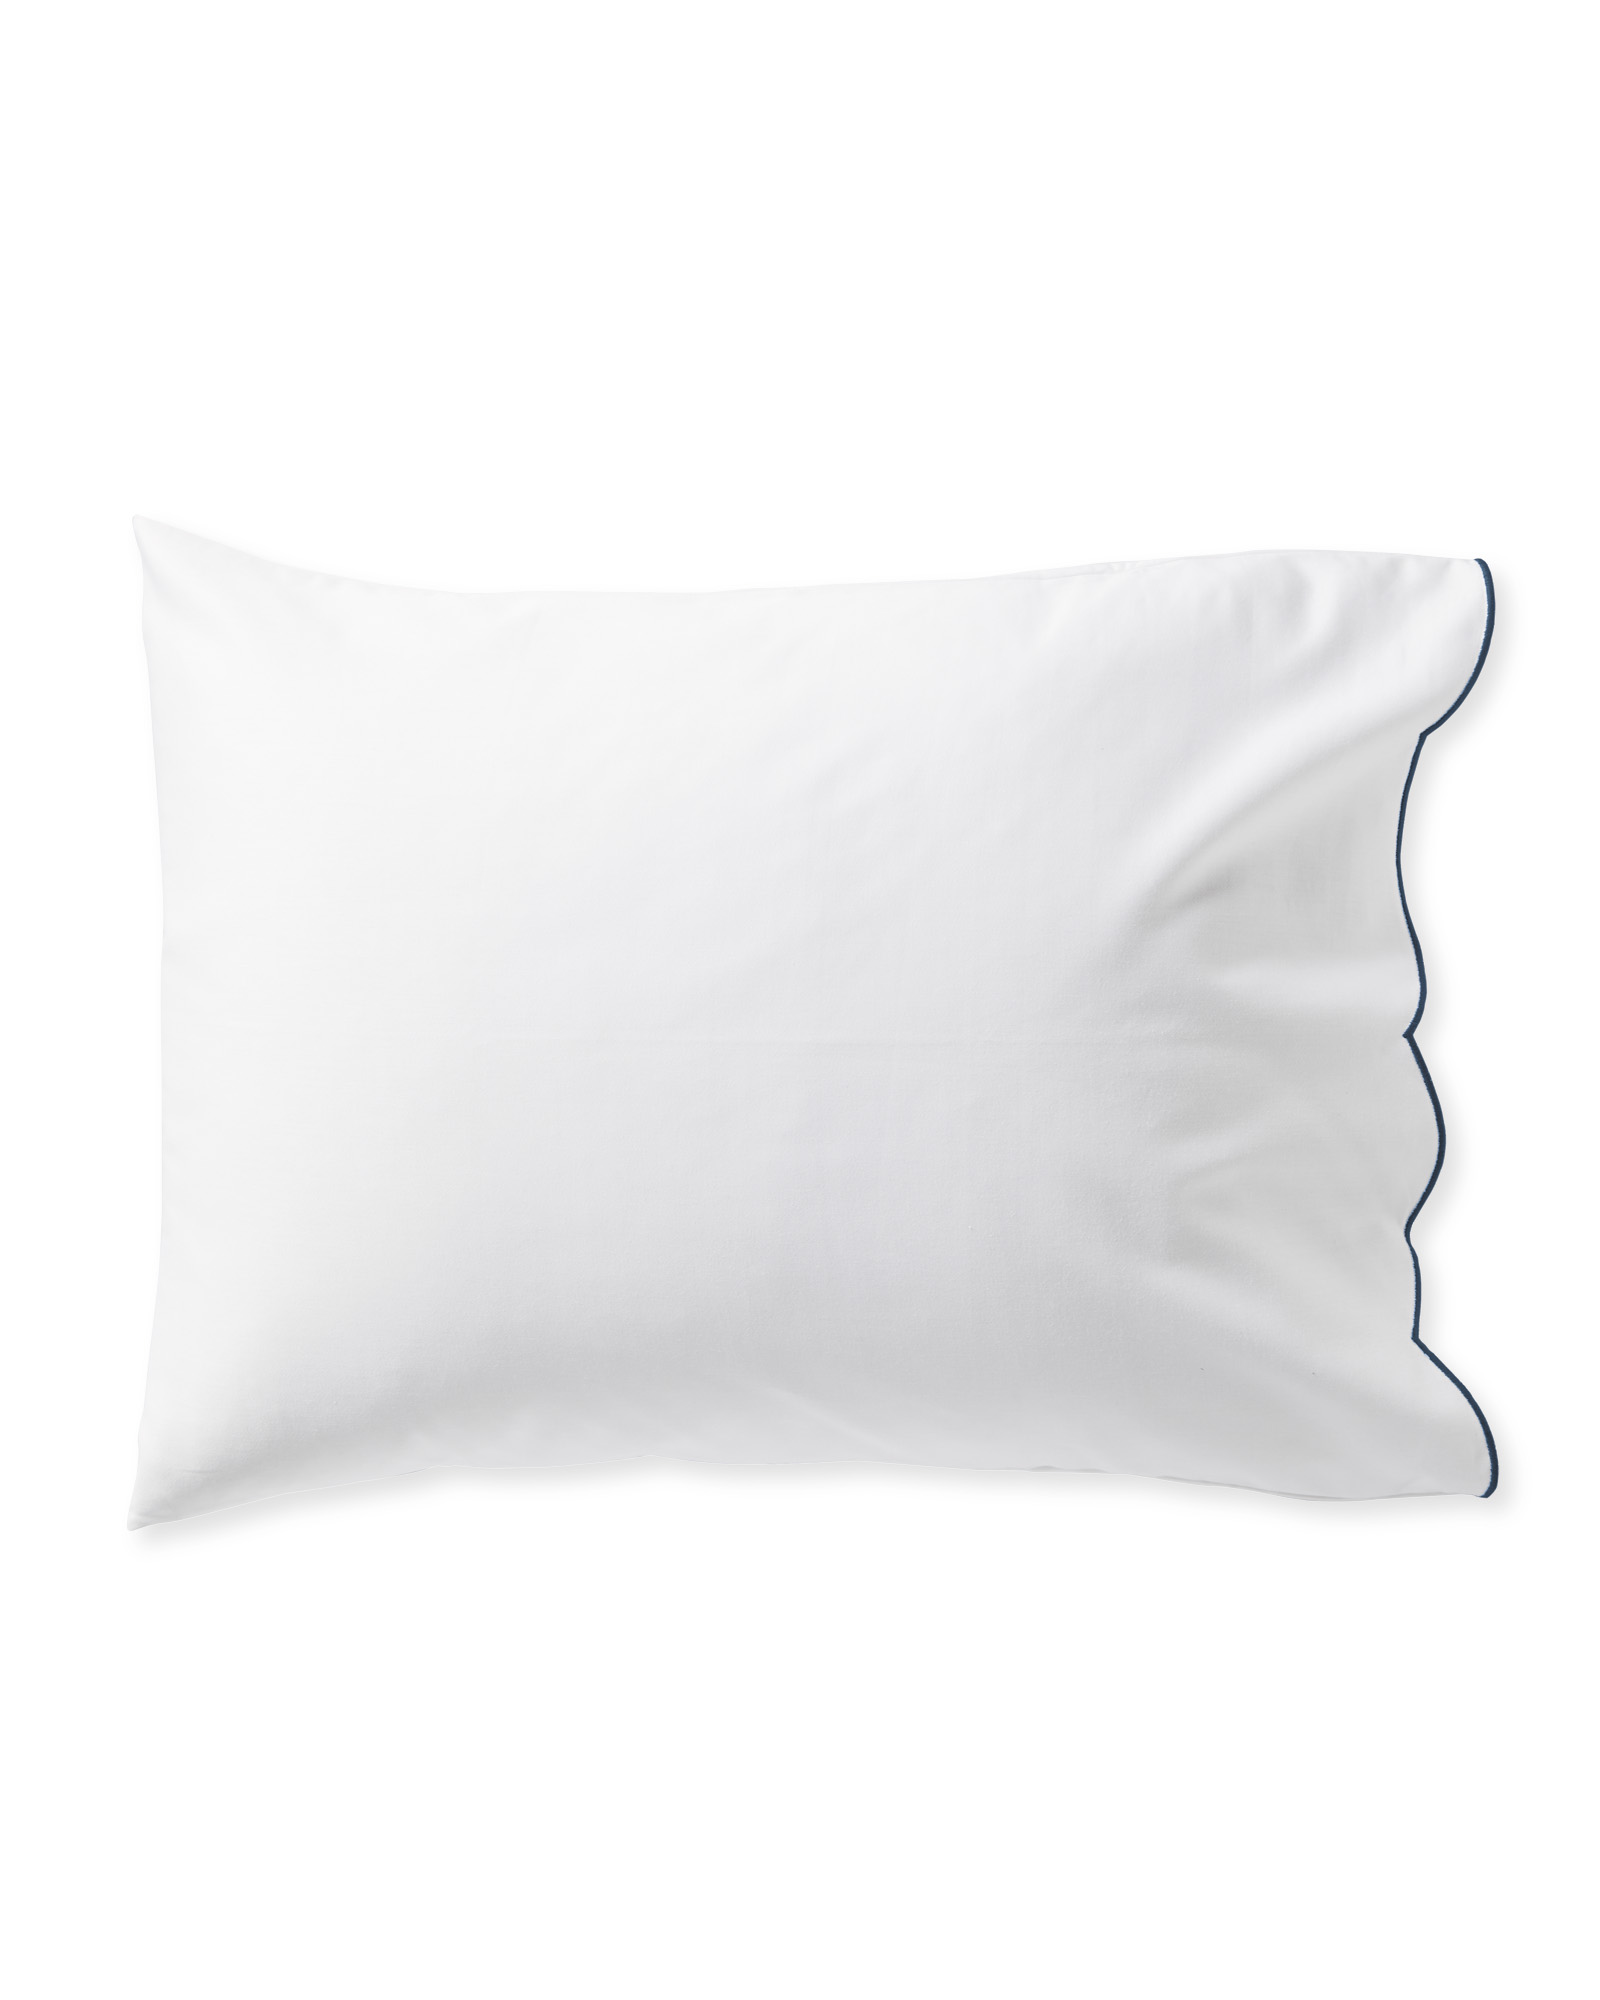 Scallop Pillowcases (Set of 2), Navy